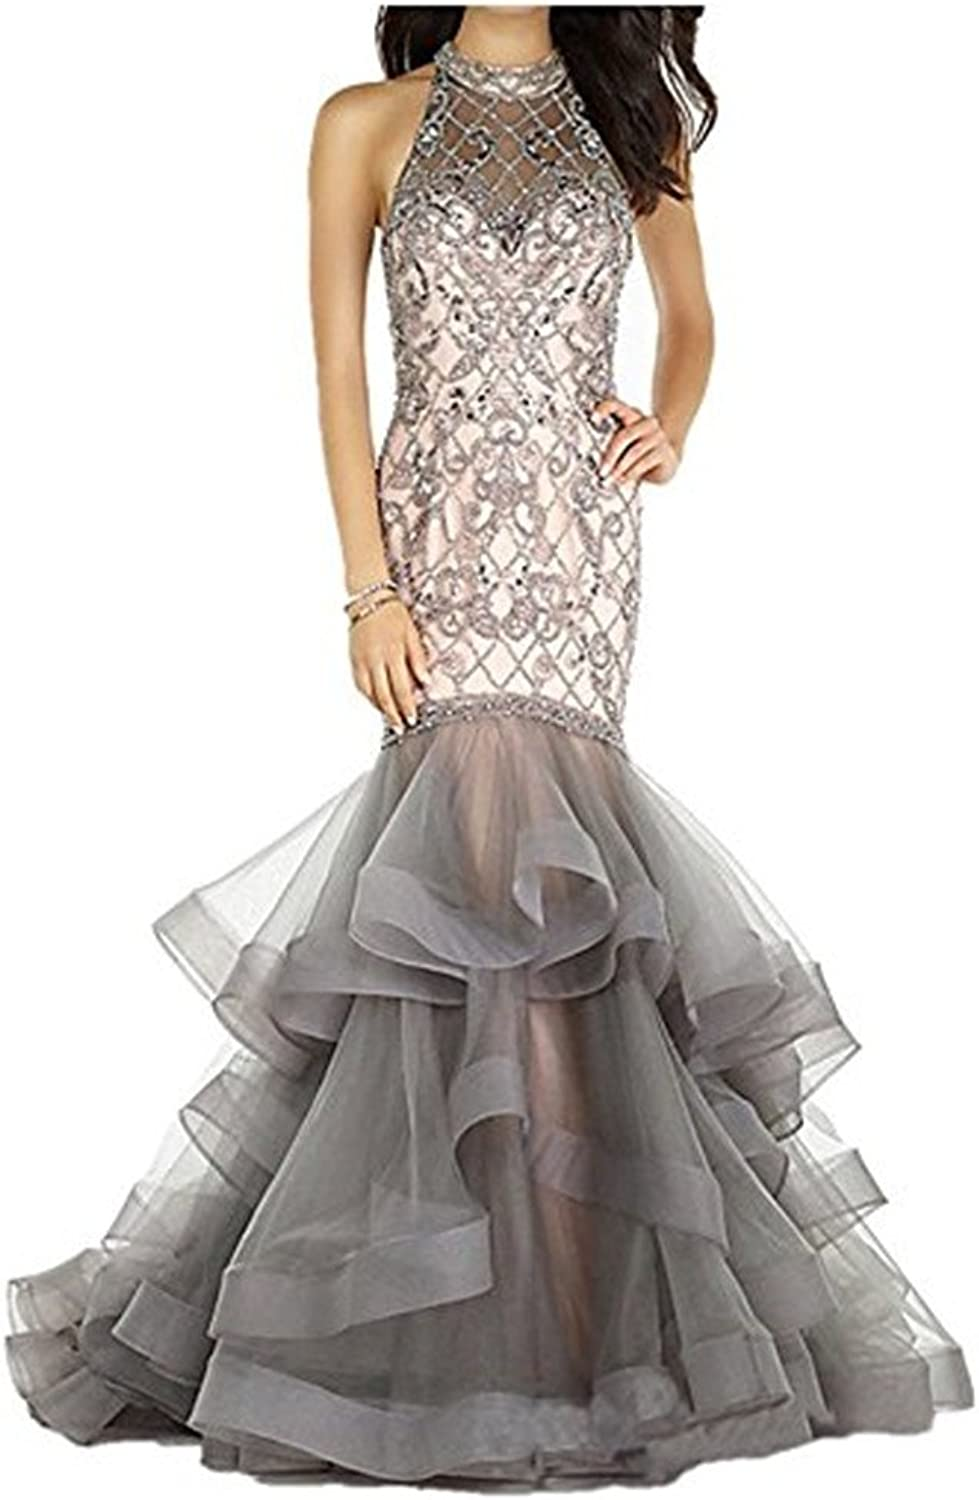 LEJY Women's Ruffle Mermaid Evening Dress Sparkly Halter Prom Dress ..